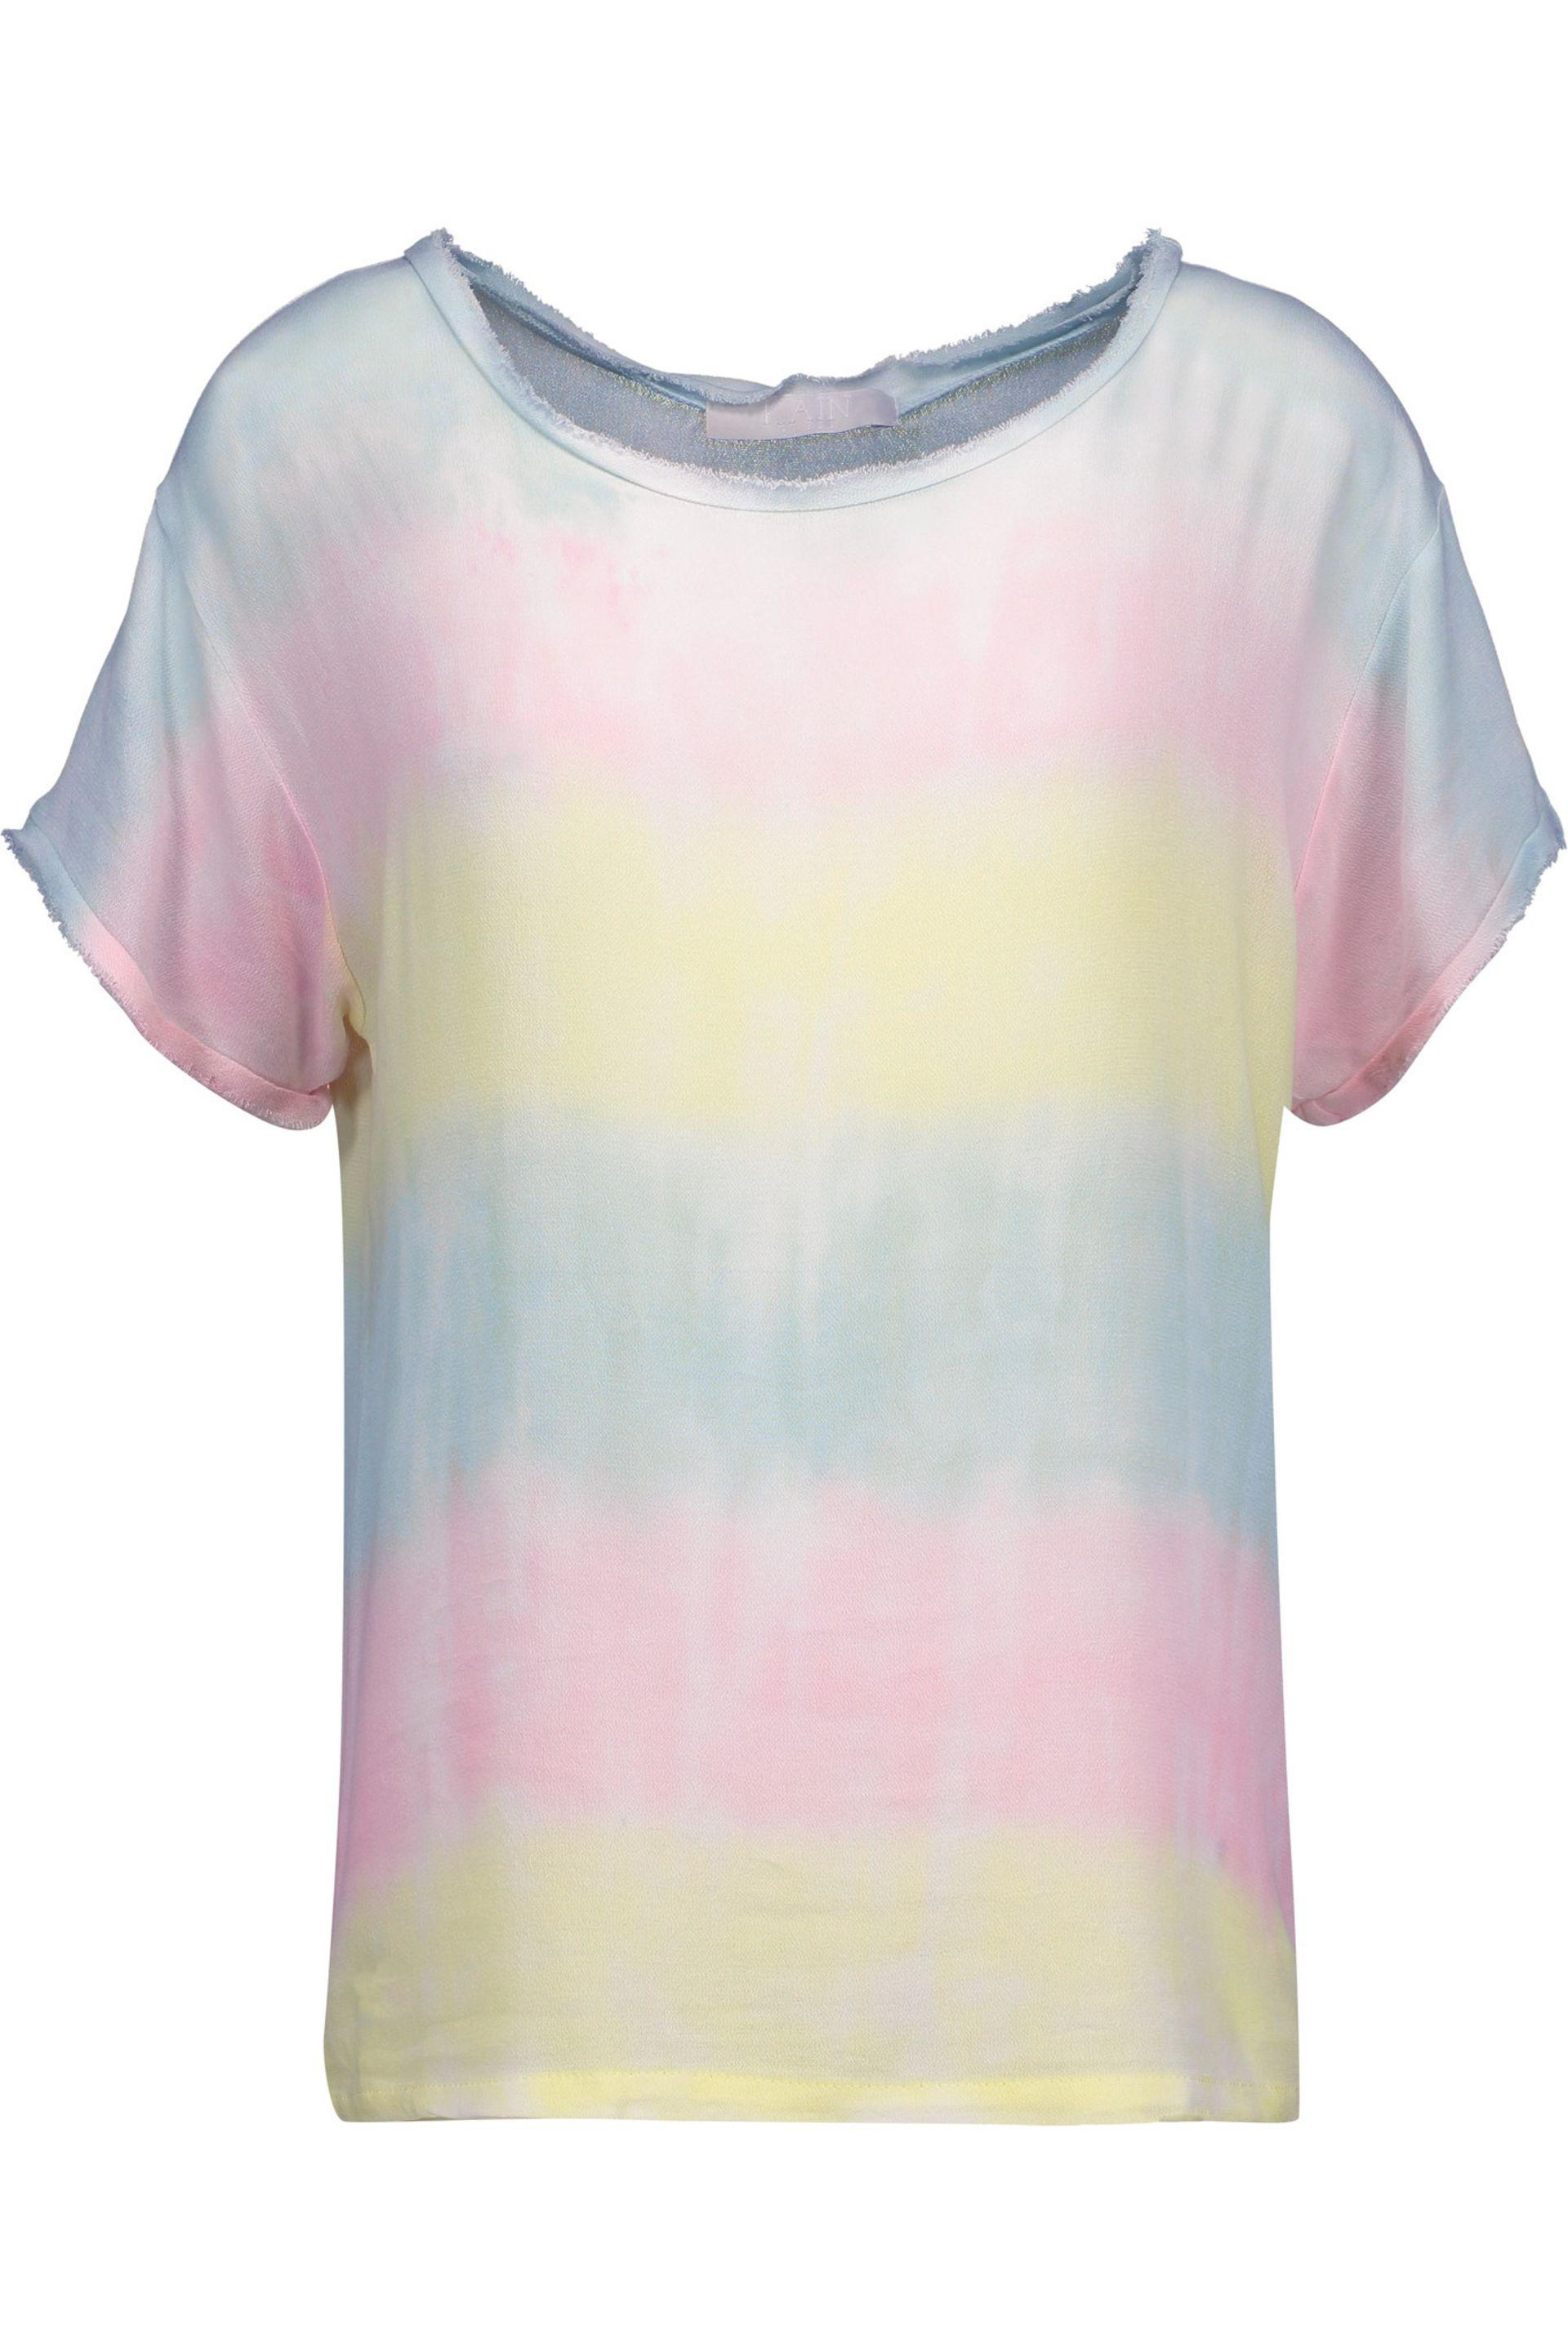 Kain Woman Bruni Frayed Tie-dyed Gauze Tank Baby Pink Size M Kain Free Shipping Fast Delivery li0jR4